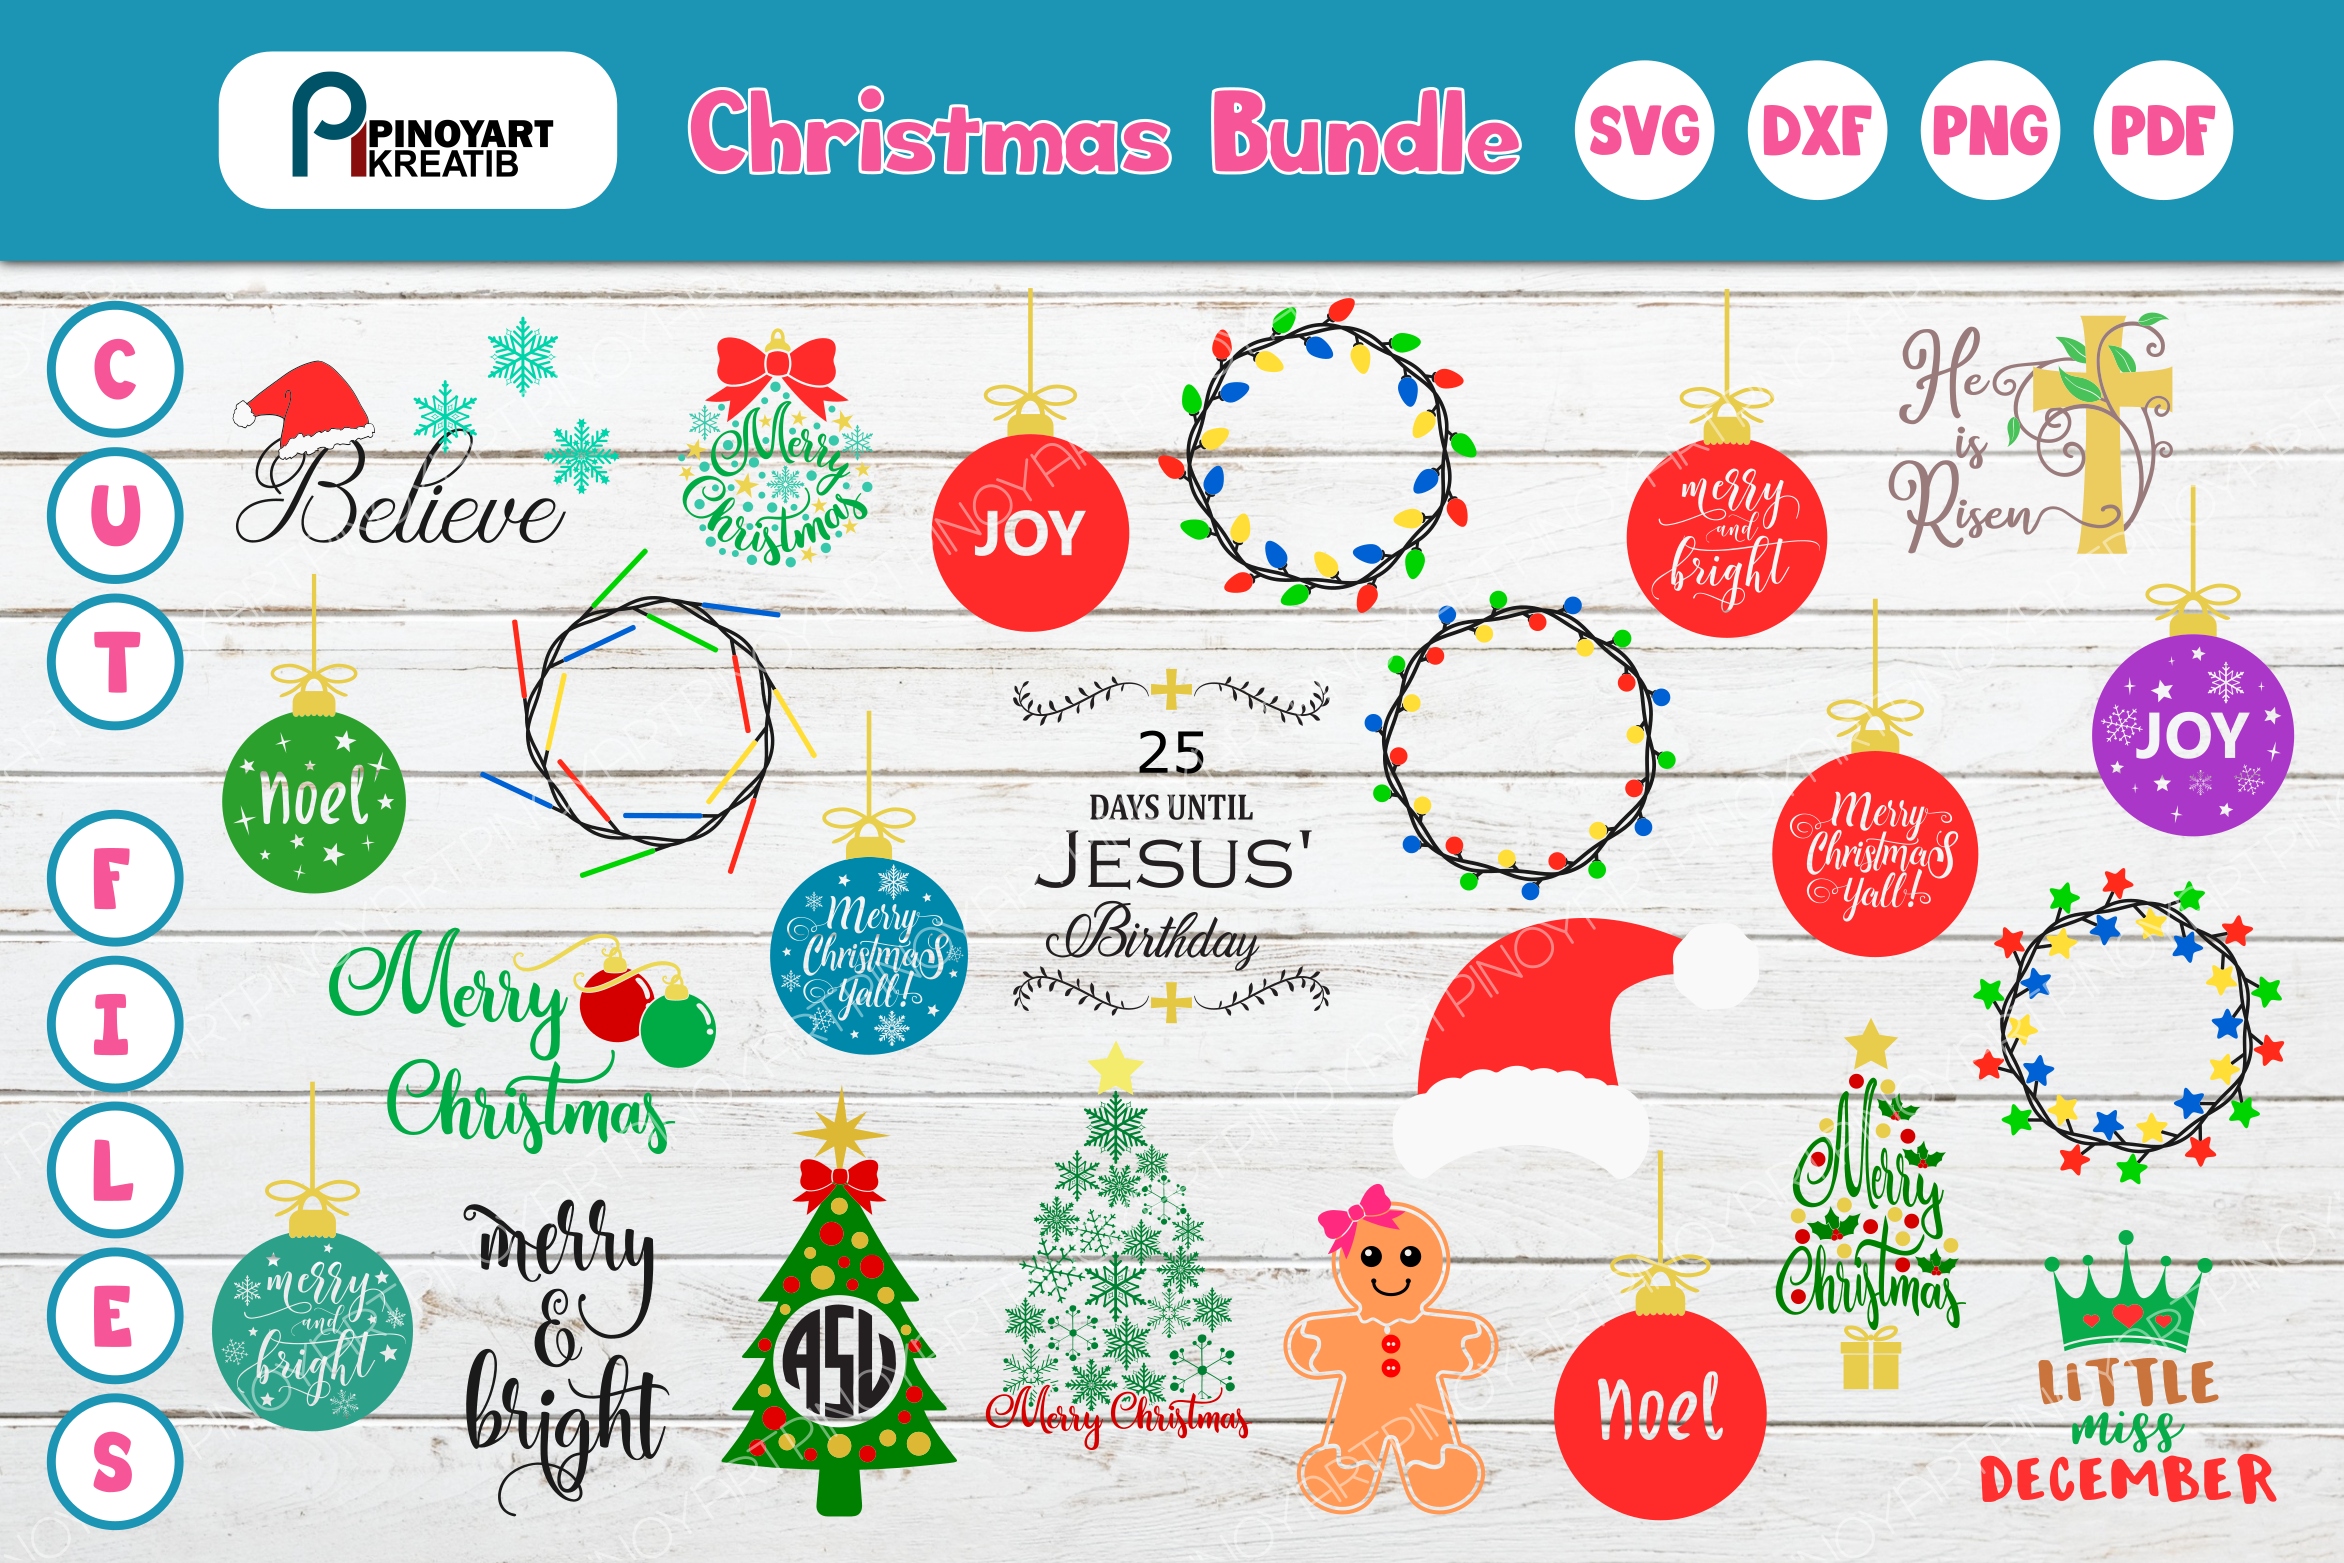 Download Free Christmas Bundle Graphic By Pinoyartkreatib Creative Fabrica for Cricut Explore, Silhouette and other cutting machines.